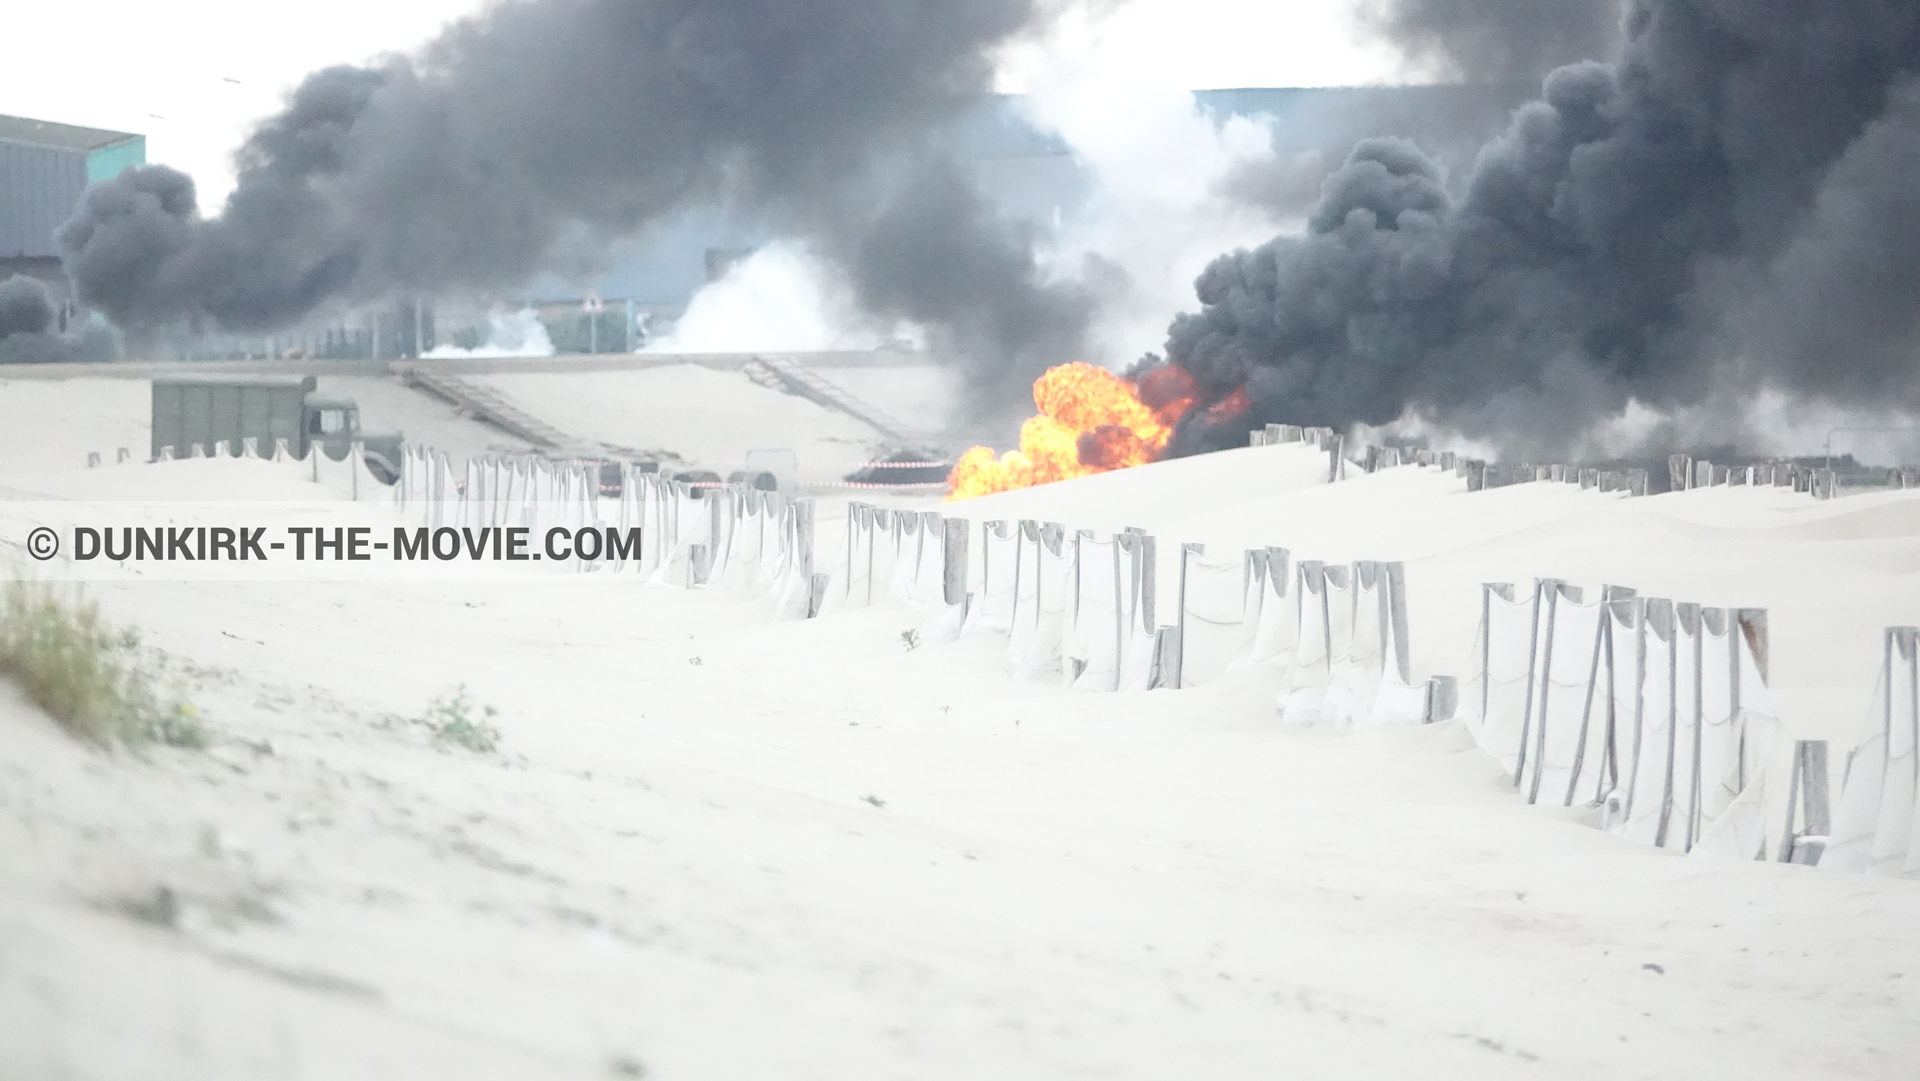 Picture with truck, black smoke, beach,  from behind the scene of the Dunkirk movie by Nolan